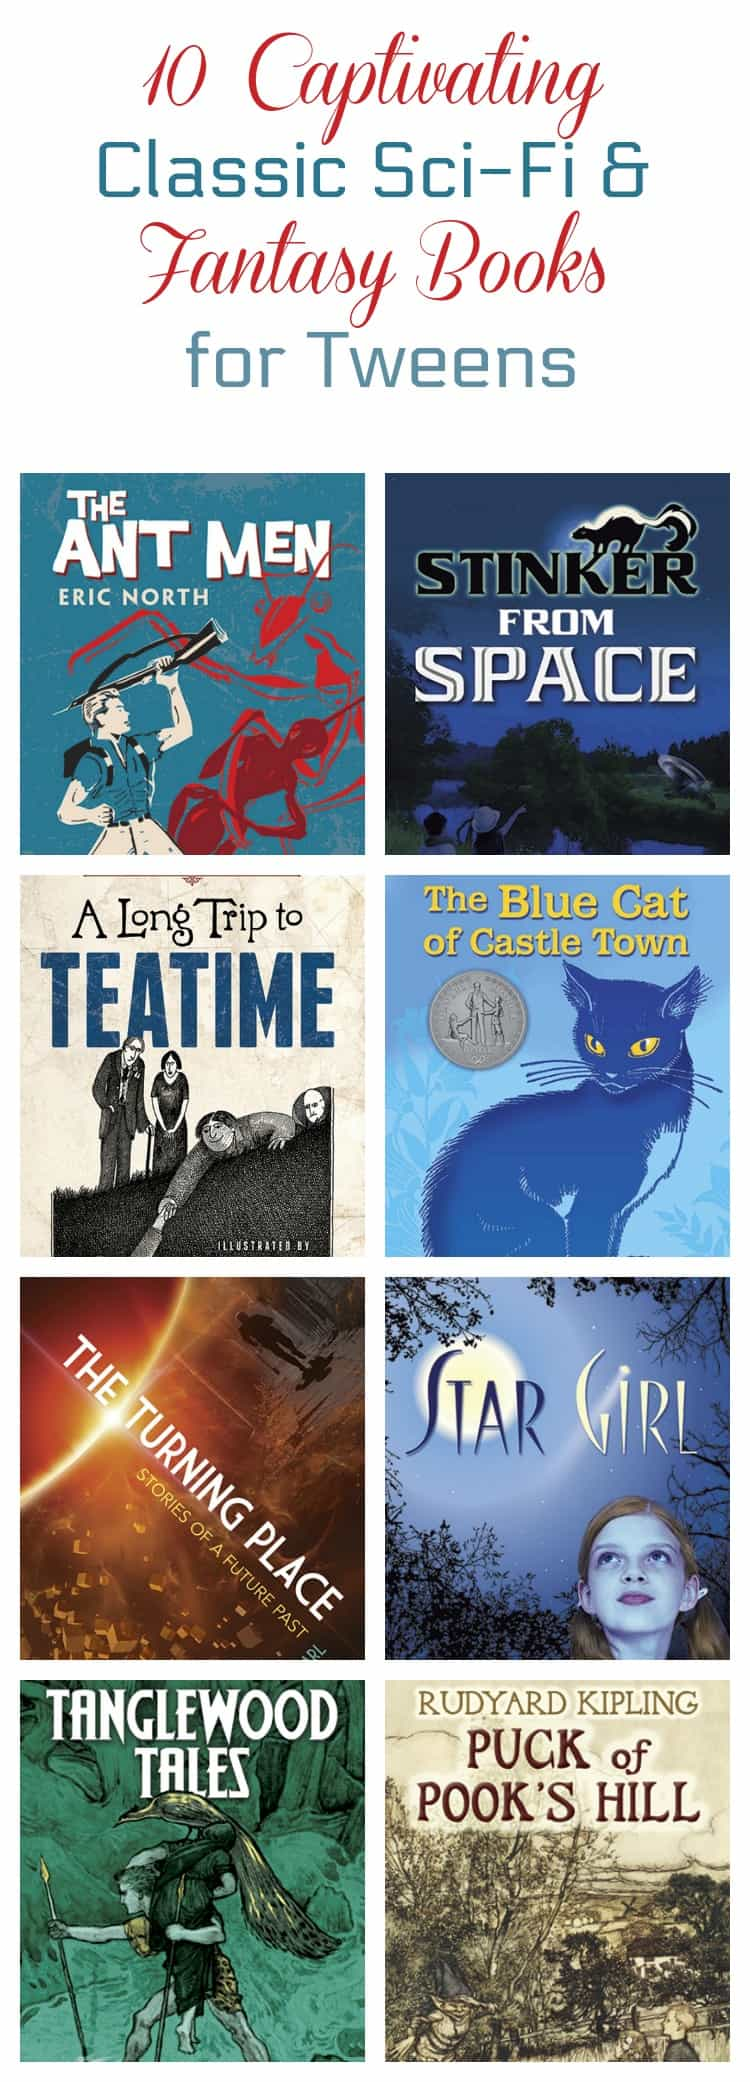 Want to introduce your middle-grade tweens to classic literature? Start with these 10 captivating science fiction and fantasy books from Dover!